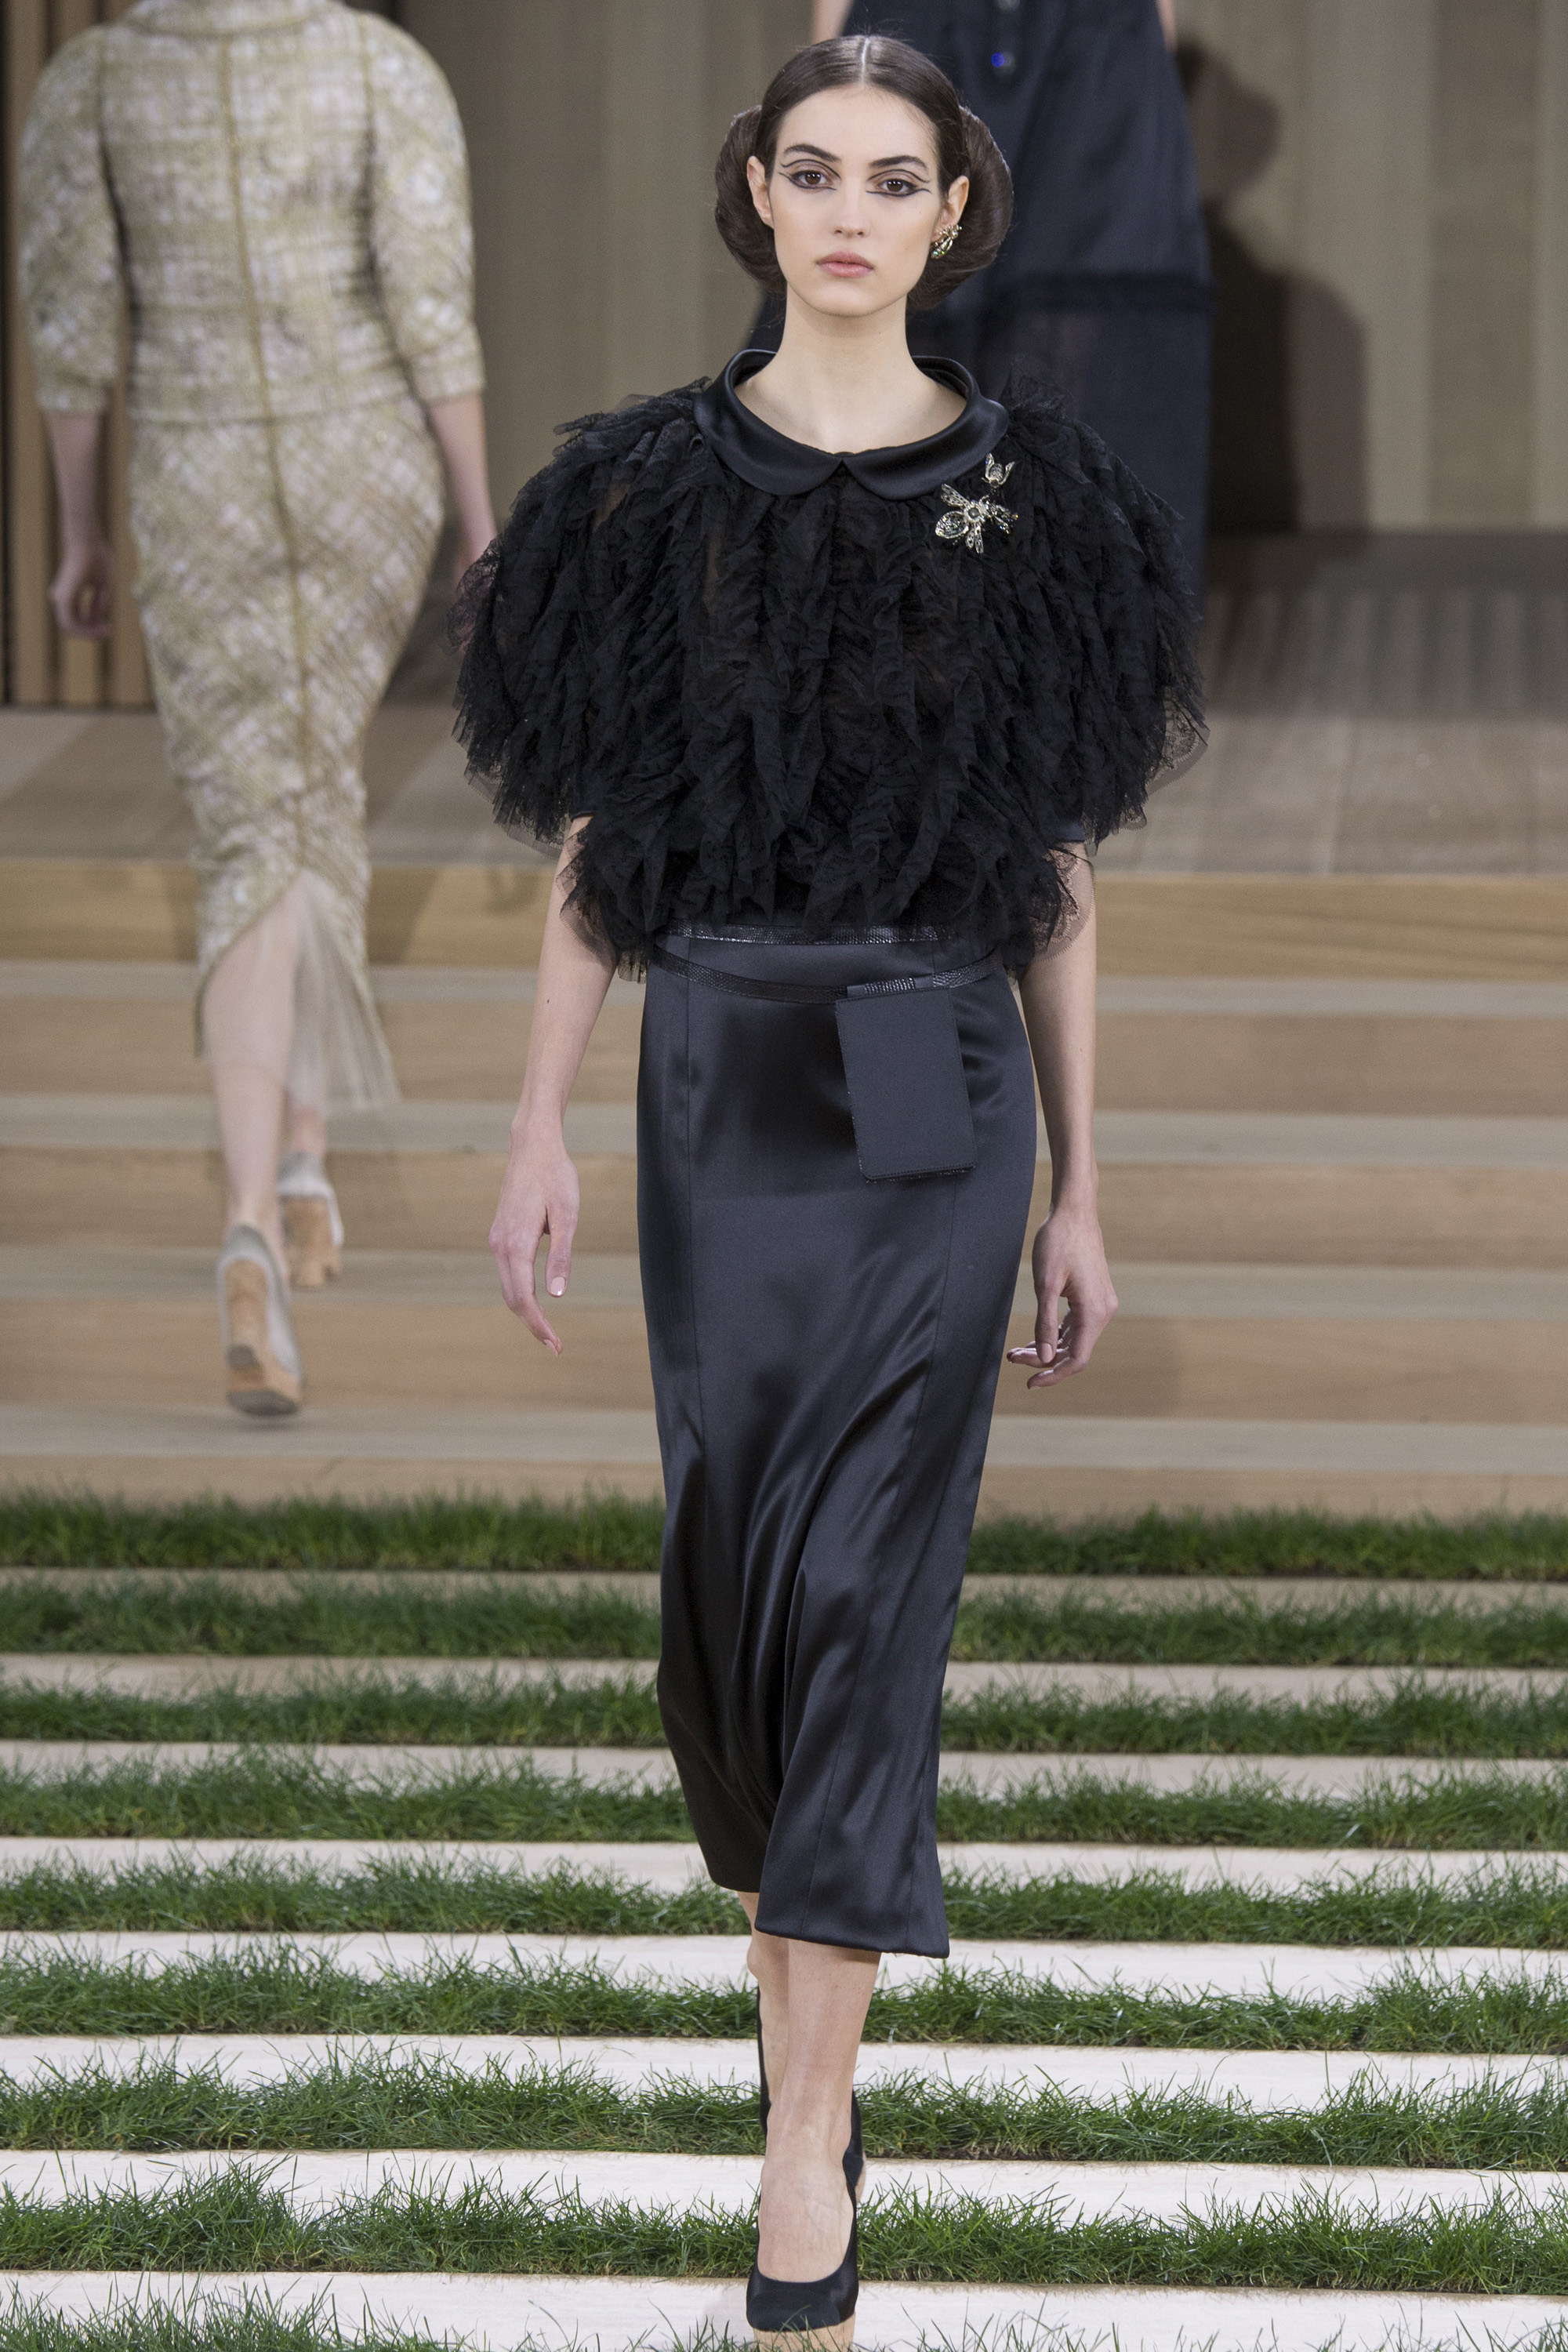 Chanel-Couture-Spring-2016-Paris-Fashion-Week-7.jpg